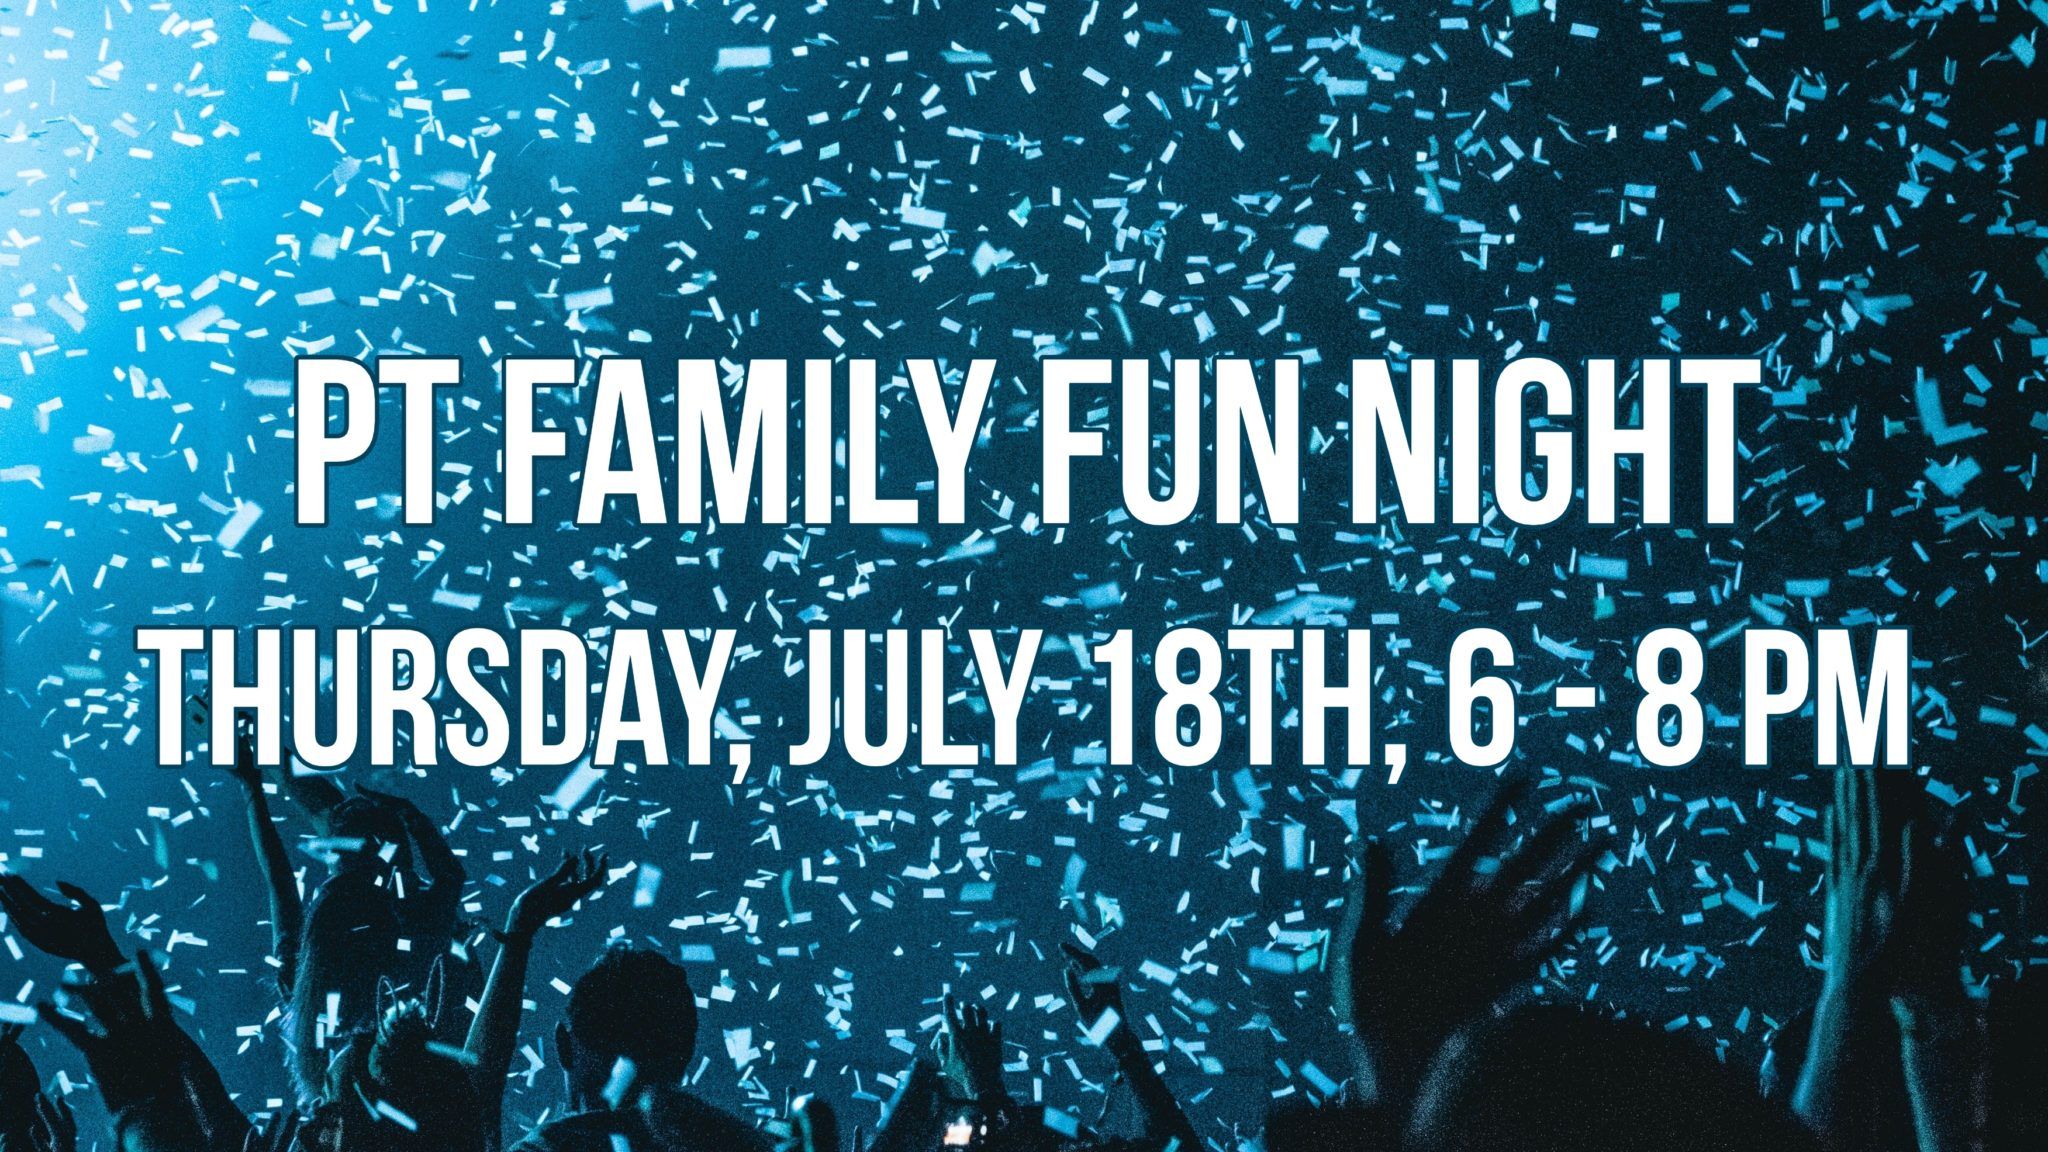 PT Family Fun Night Thursday @ 6pm